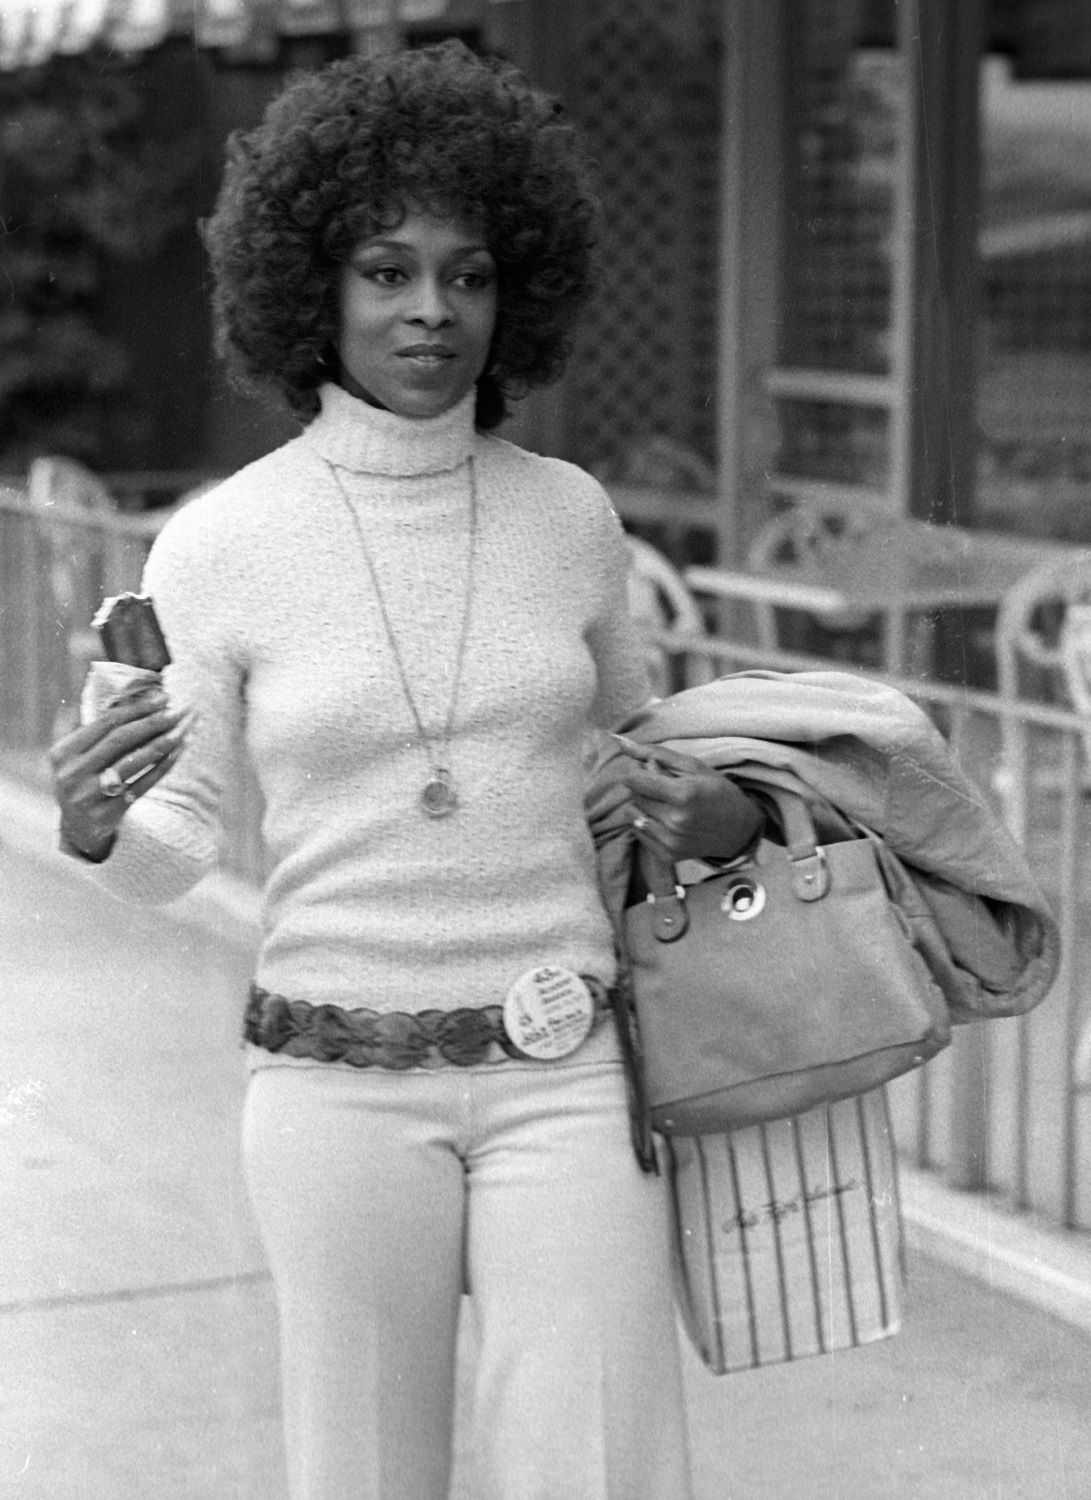 Images Of Lola Falana Pretty lola falana | lola falana | pinterest | lola falana and timeless